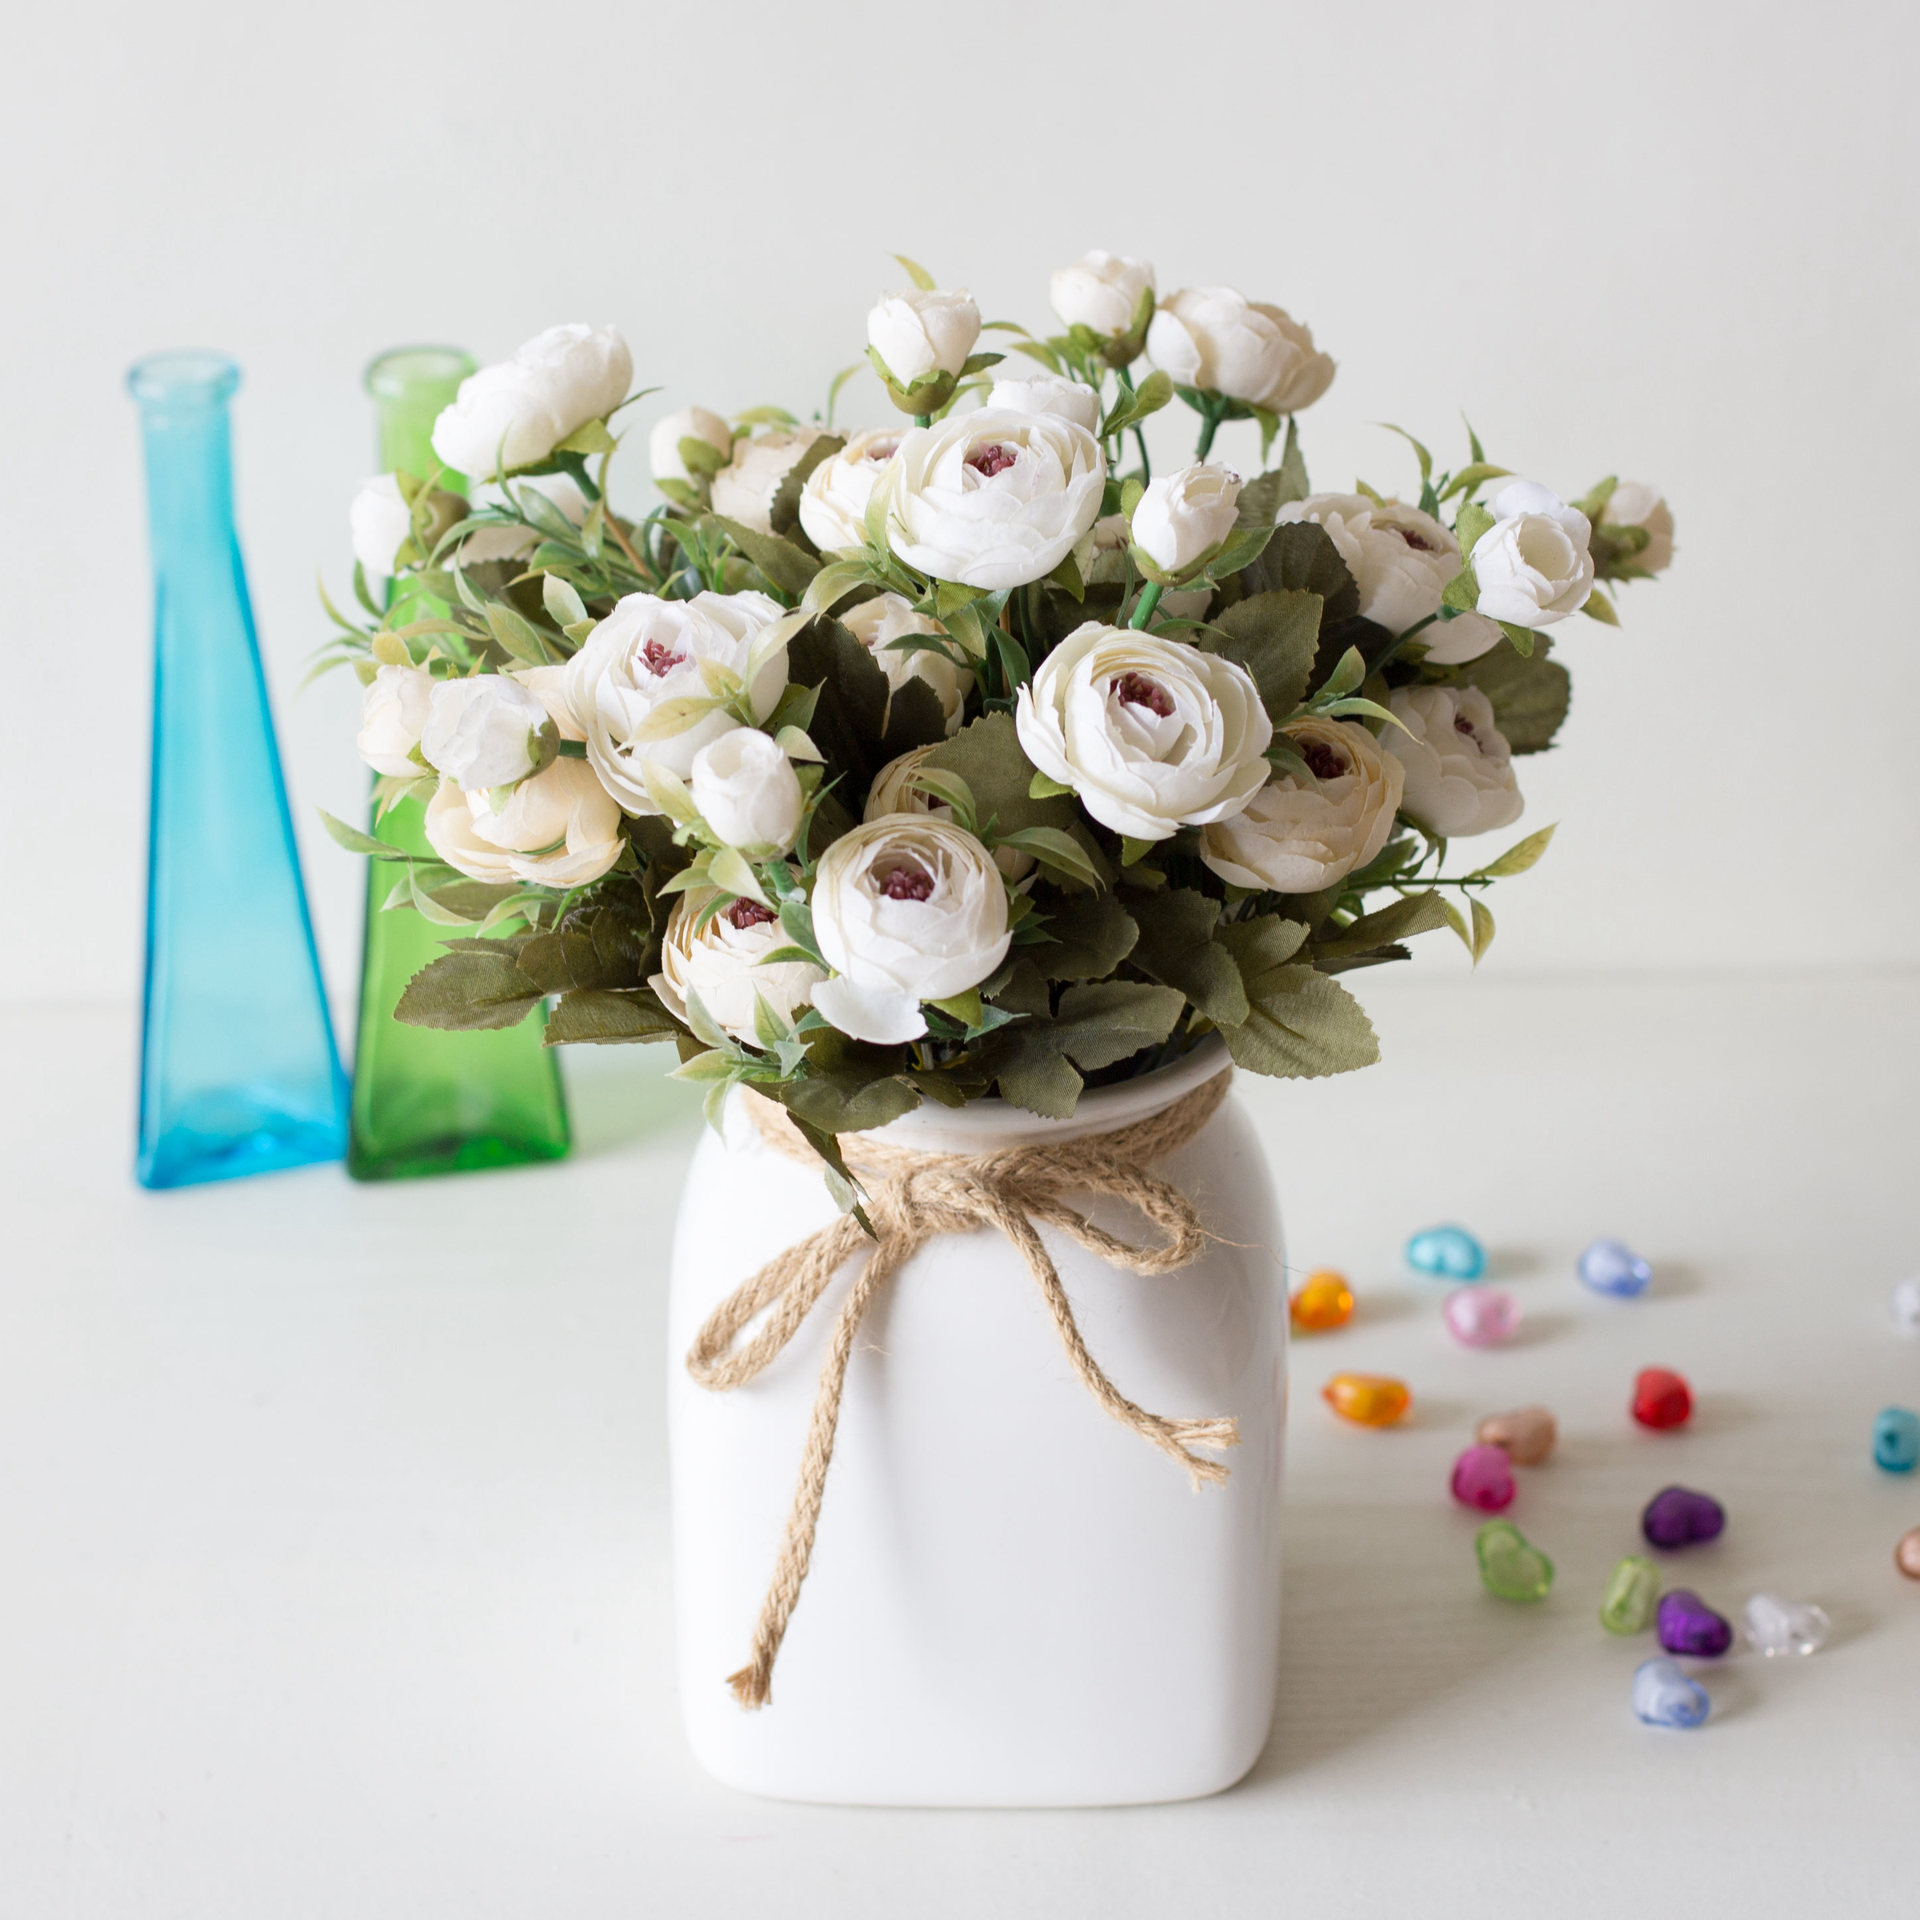 Image 3 - 9 Head/Bouquet Mini Fake Tea Rose Peony Flowers For Home Wedding Decor Artificial Rose Penoy Flower Bouquet Bud For Room Decor-in Artificial & Dried Flowers from Home & Garden